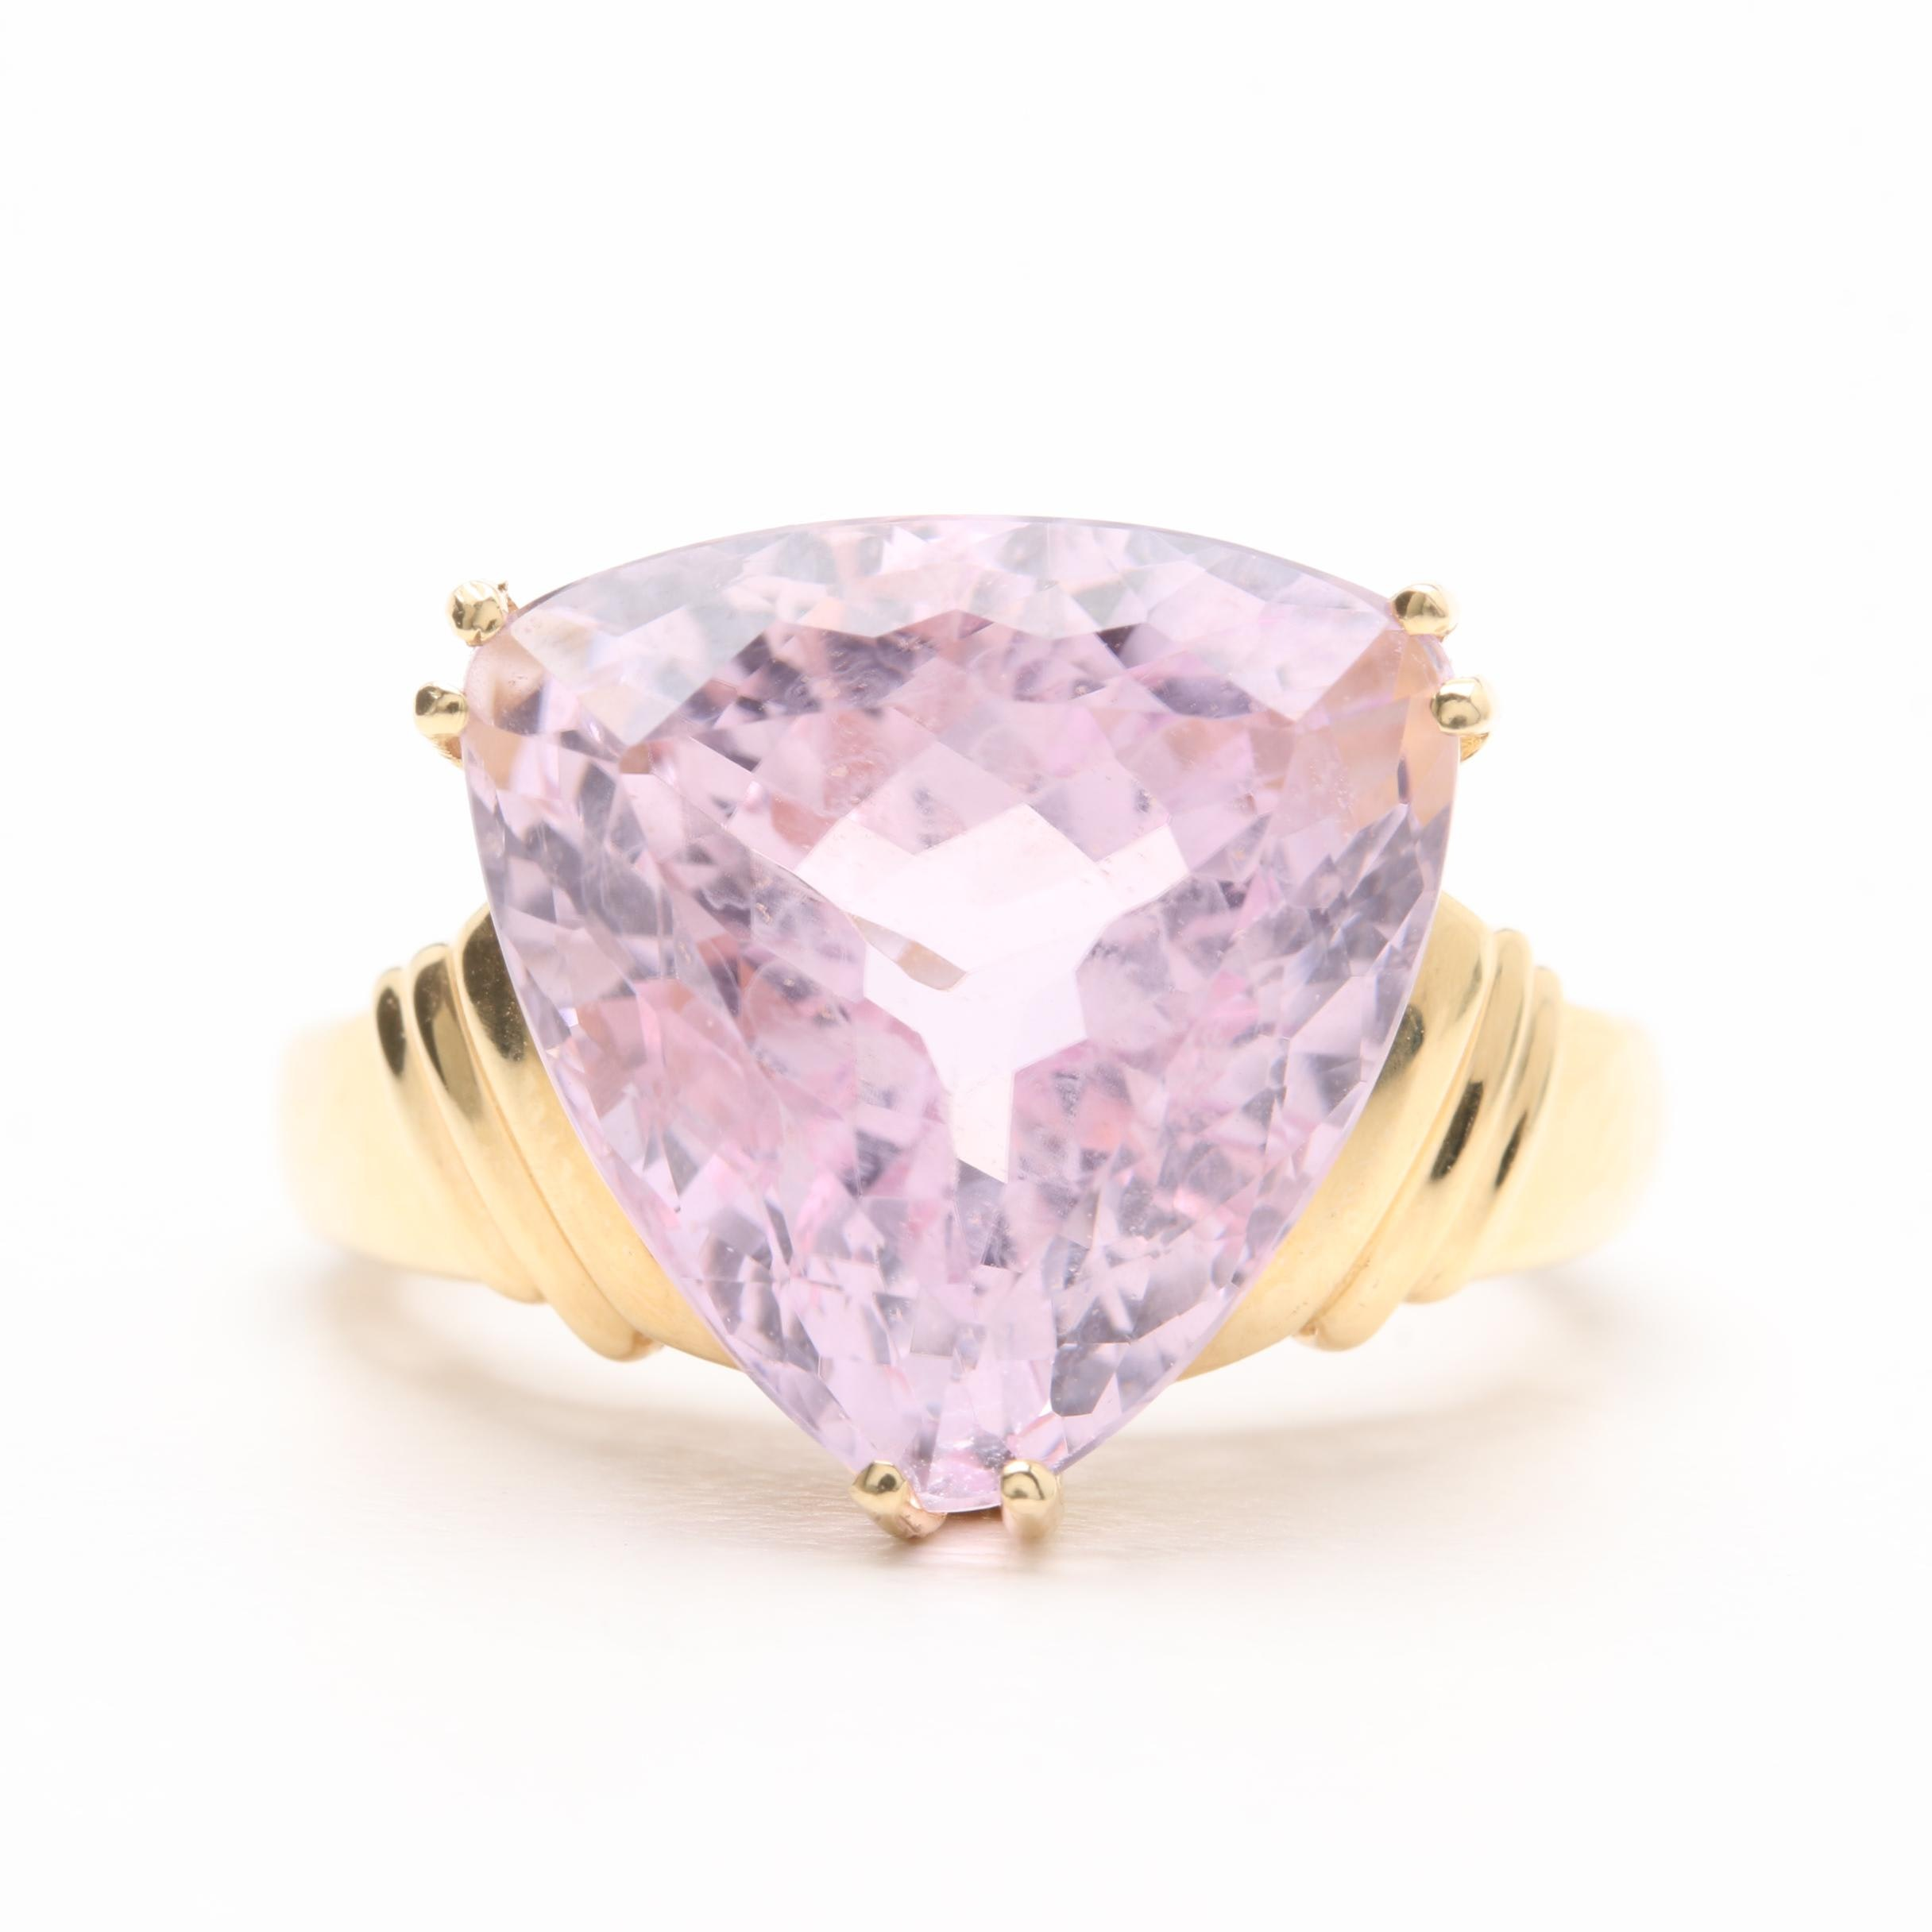 14K Yellow Gold 9.10 CT Kunzite Ring